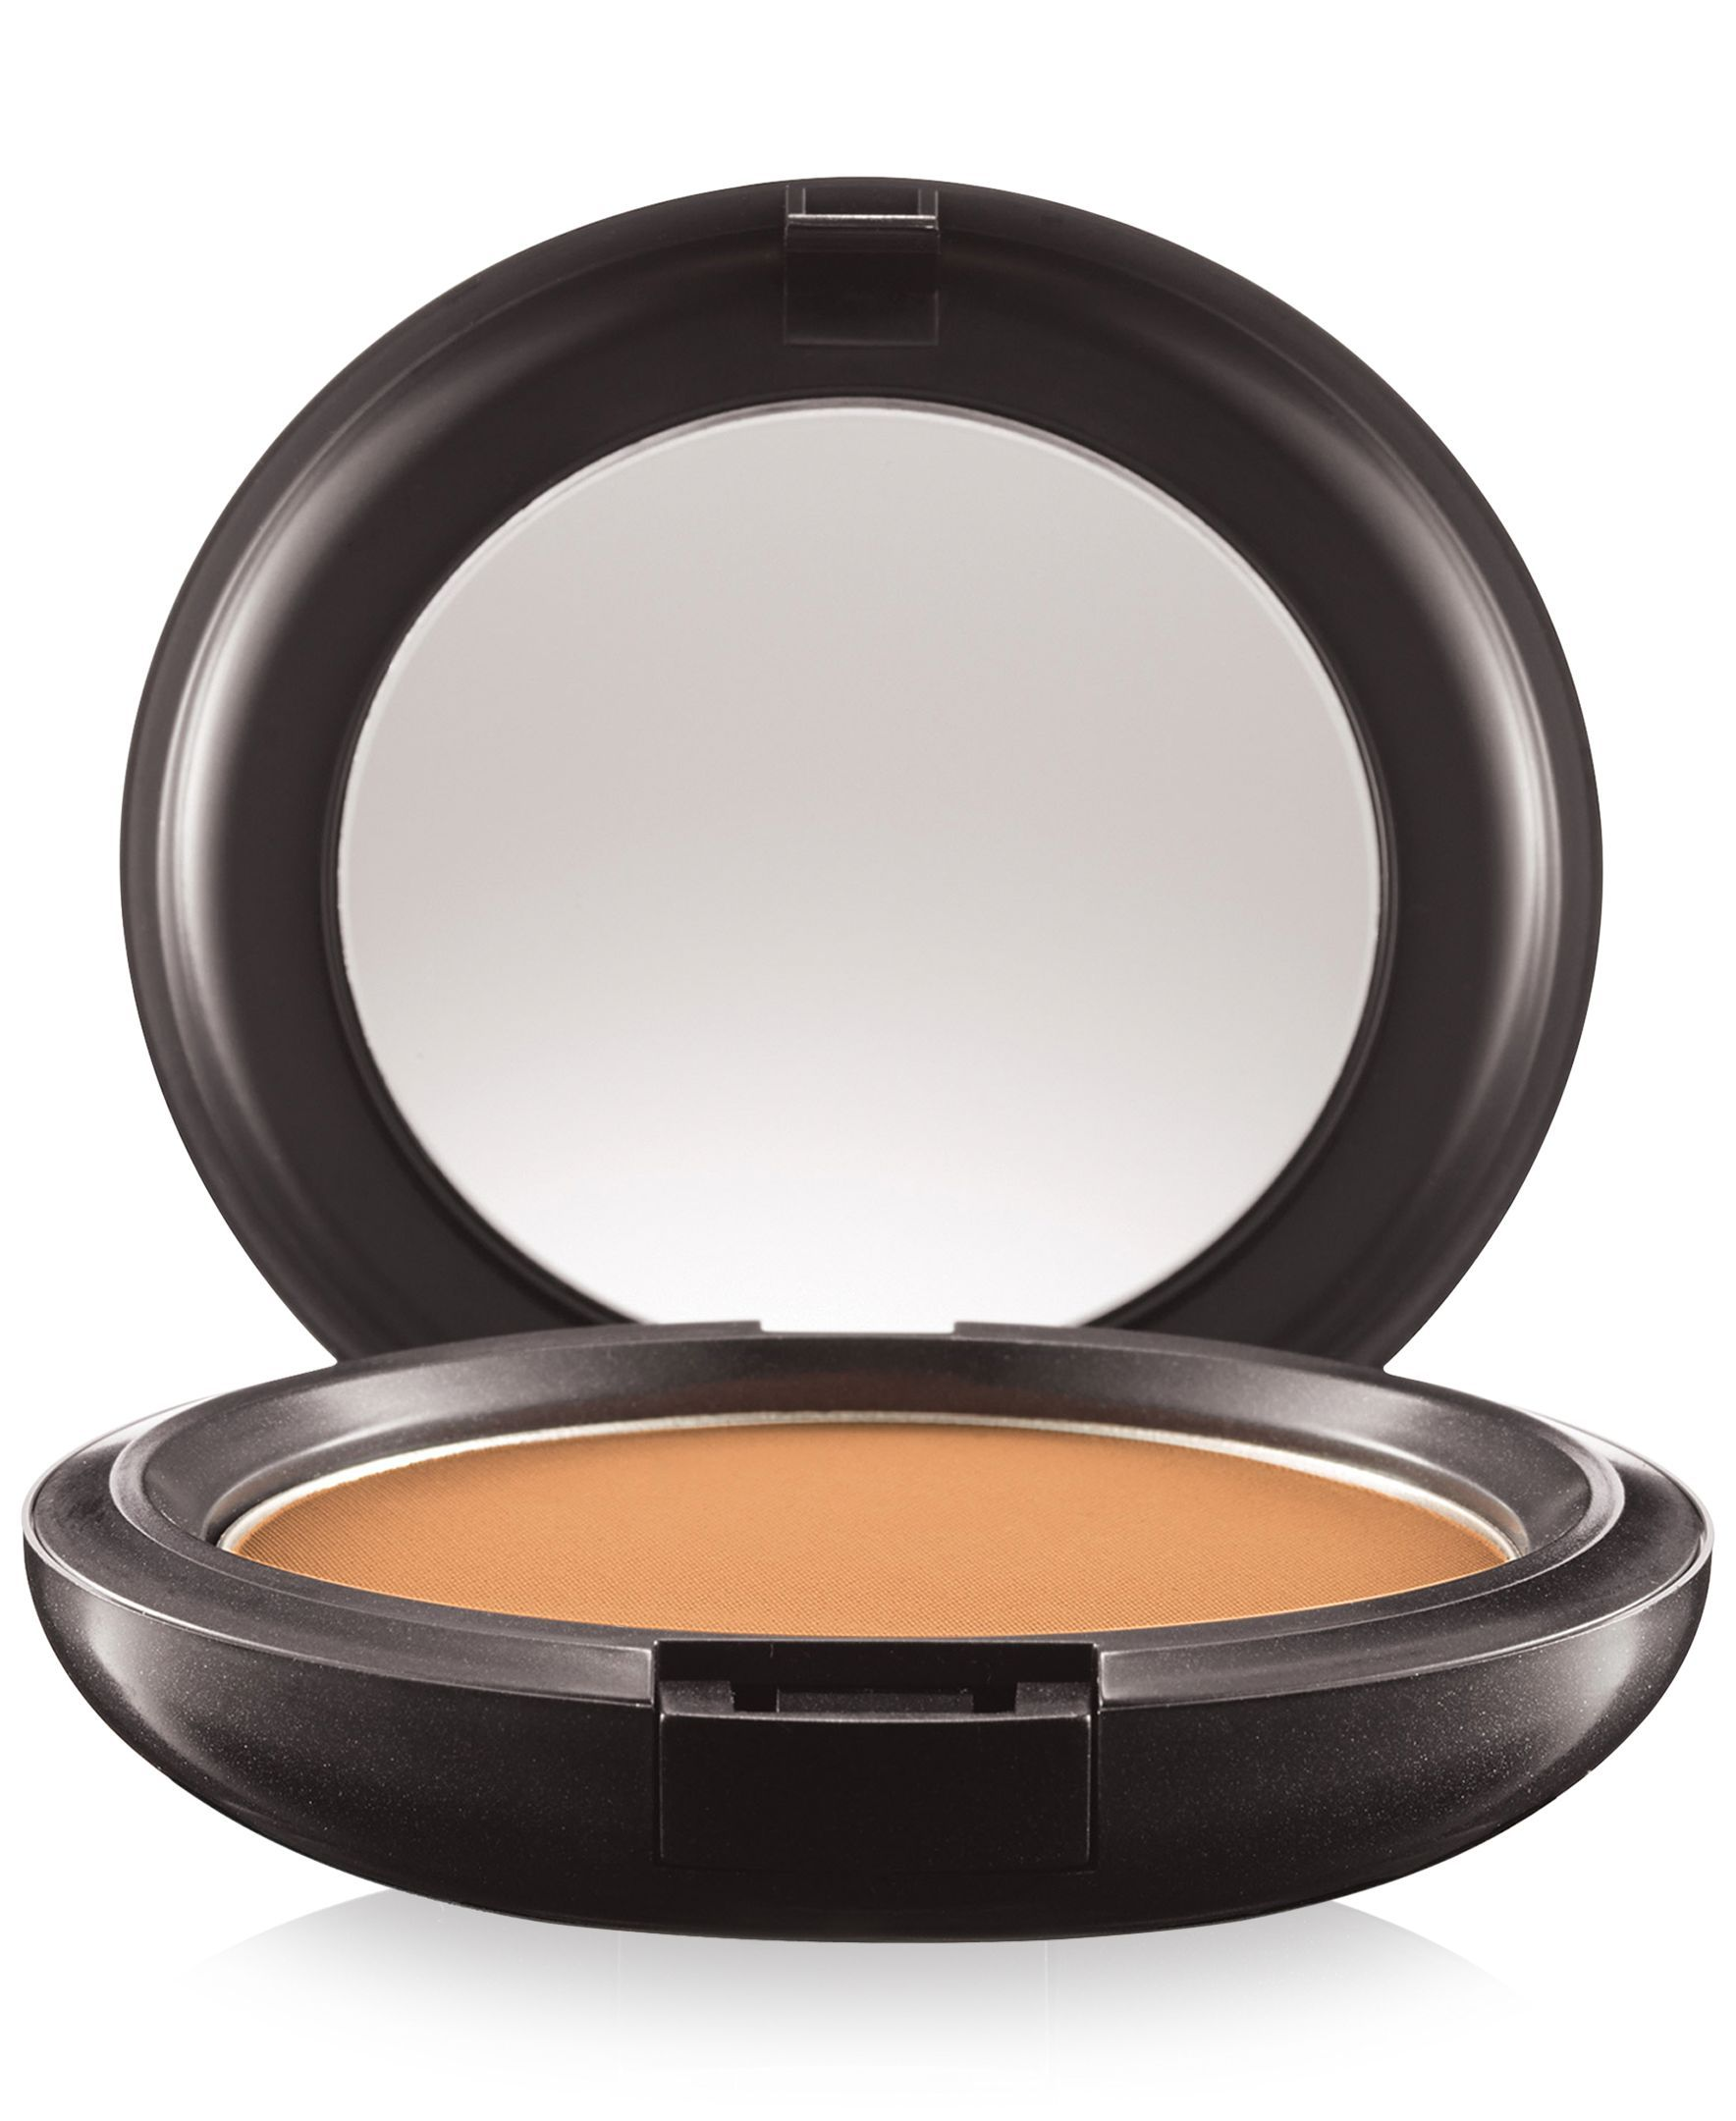 Mac Pro Longwear Pressed Powder Bronzing powder, Mac